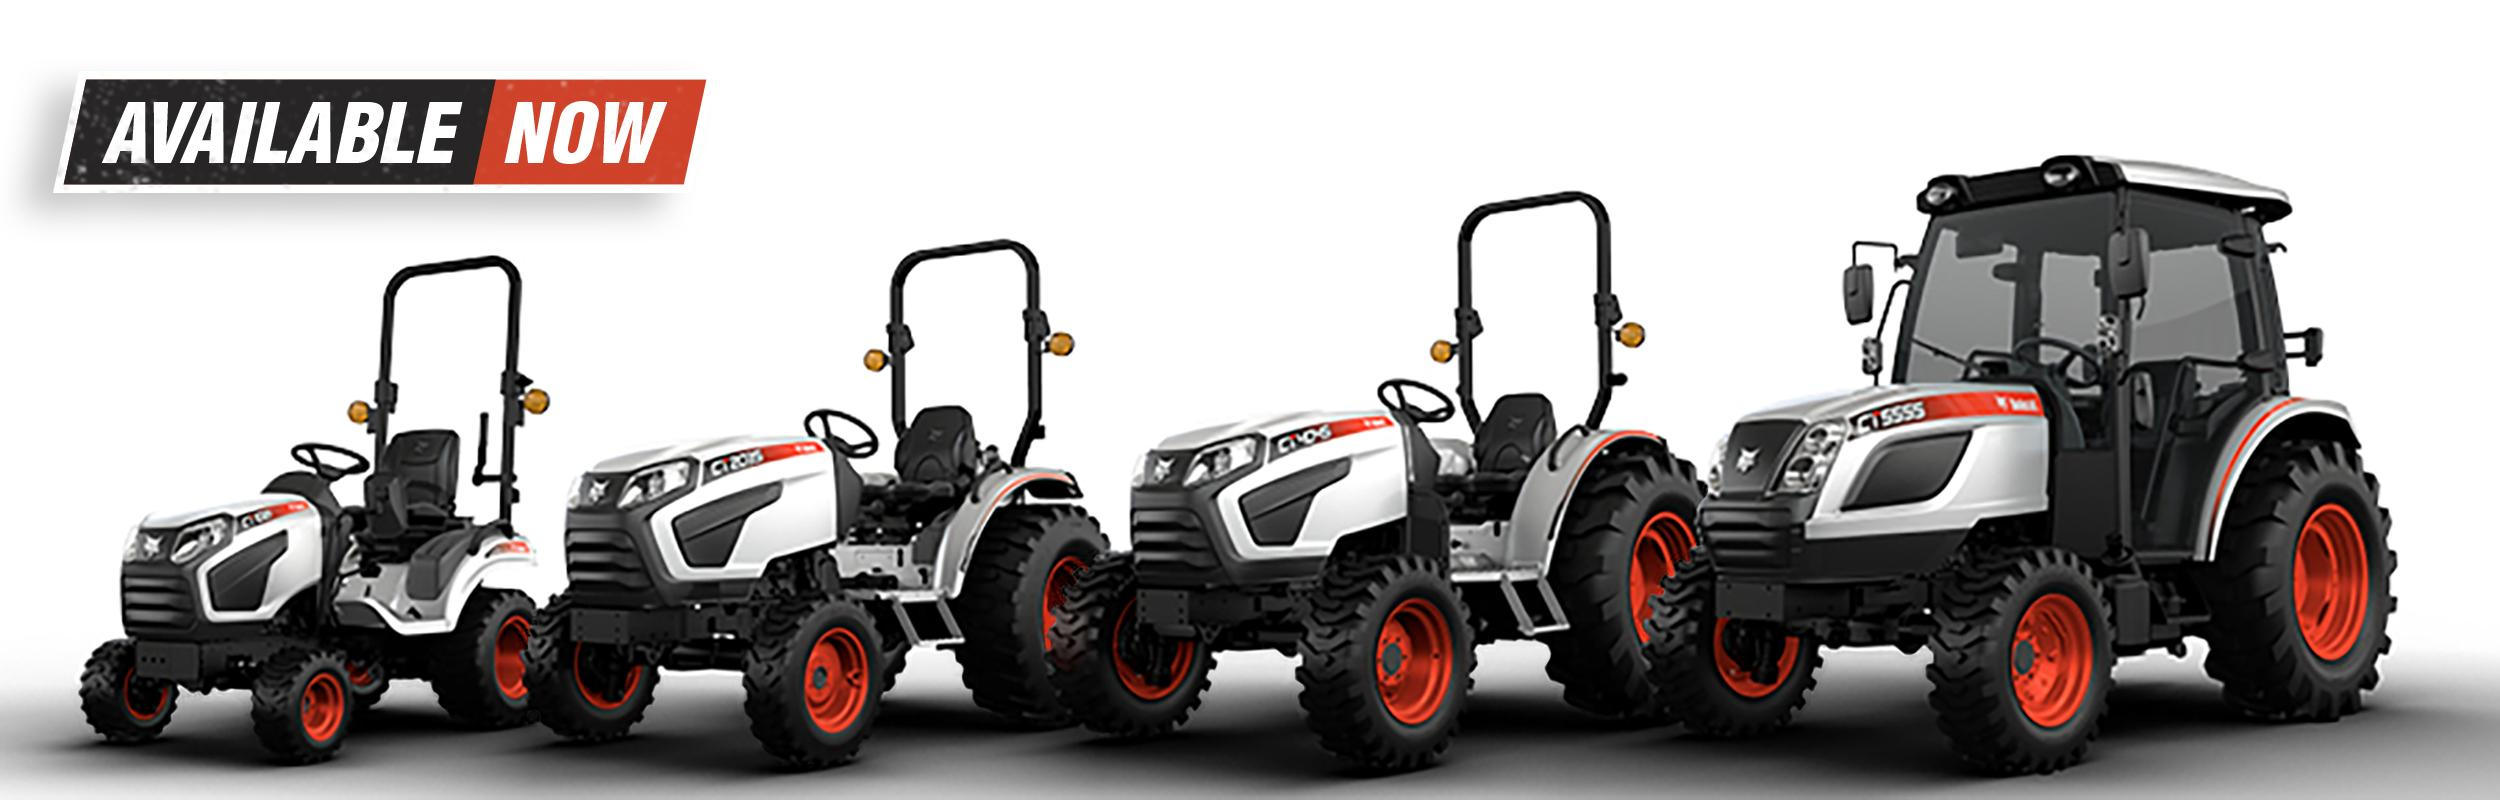 Bobcat Sub-Compact And Compact Tractor Lineup